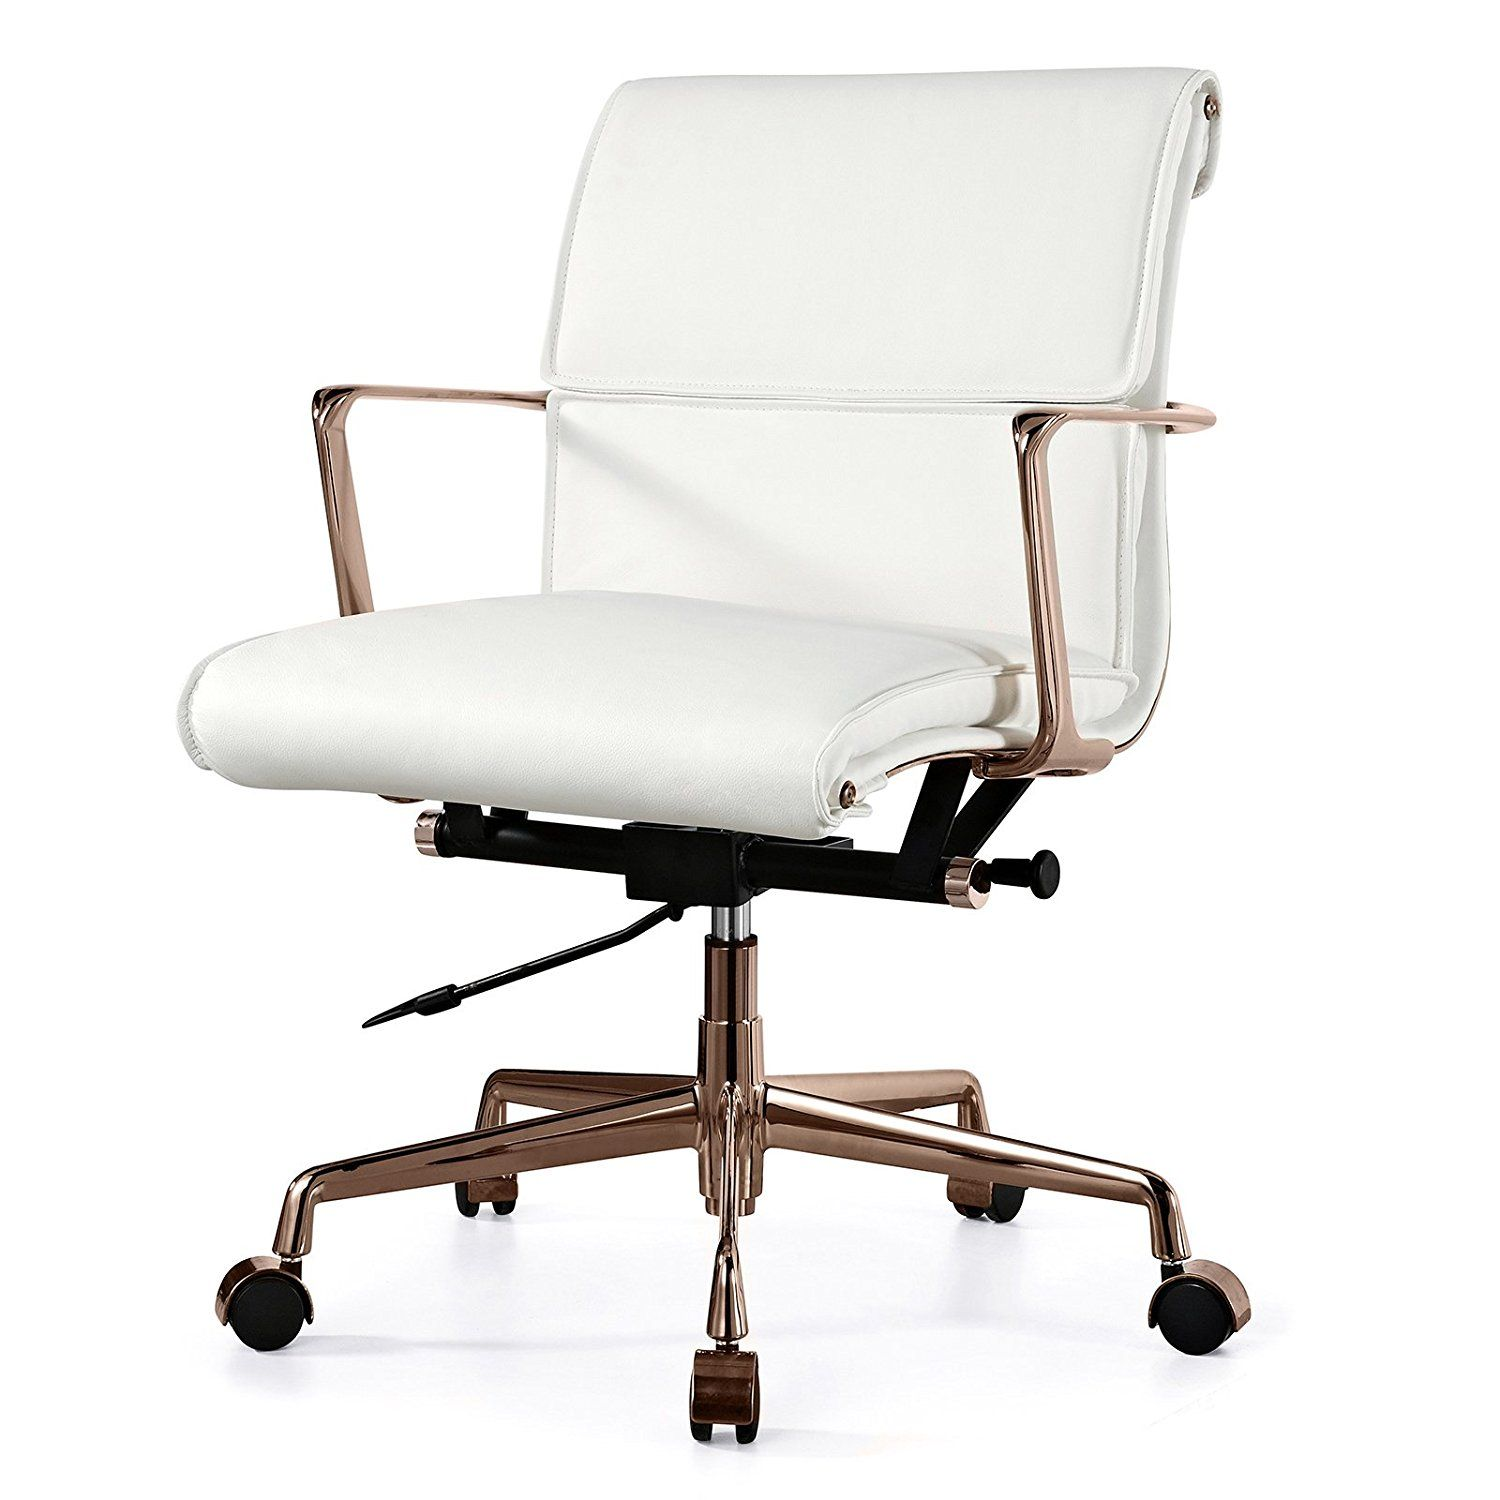 leather office chair amazon. amazon.com: meelano m347 italian leather office chair, rose gold/white: chair amazon